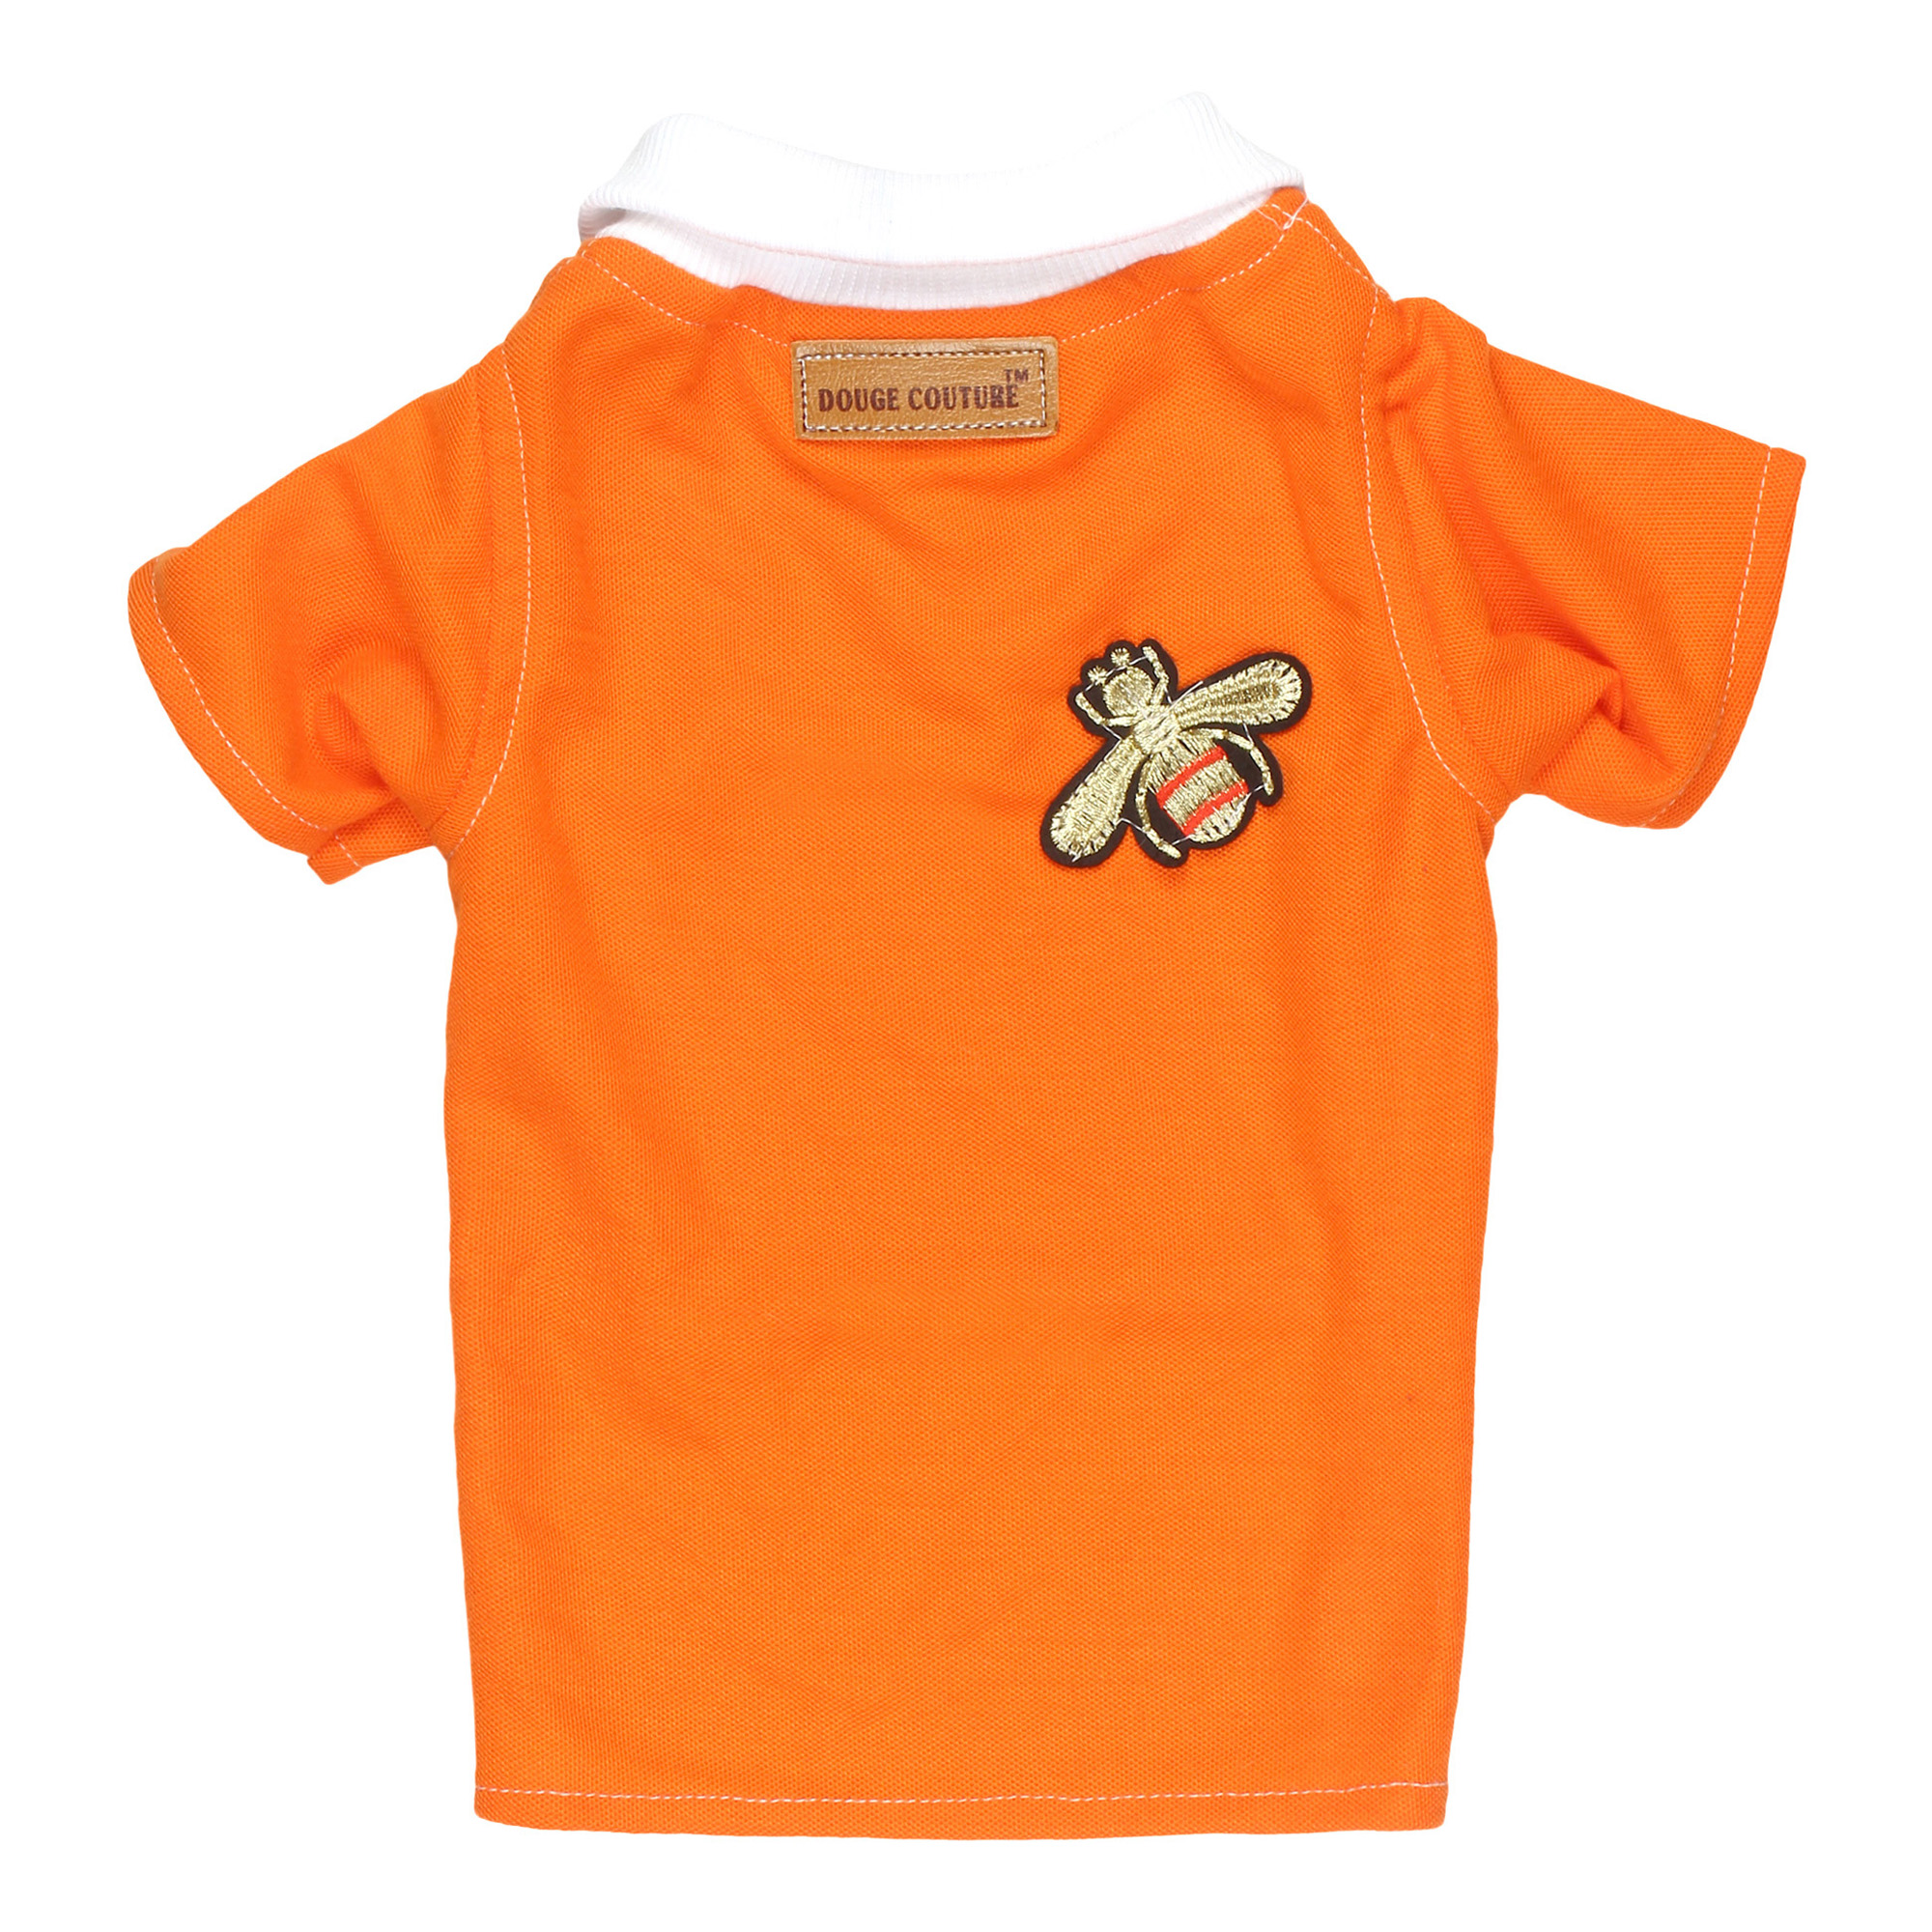 douge couture orange color polot-shirt with patch